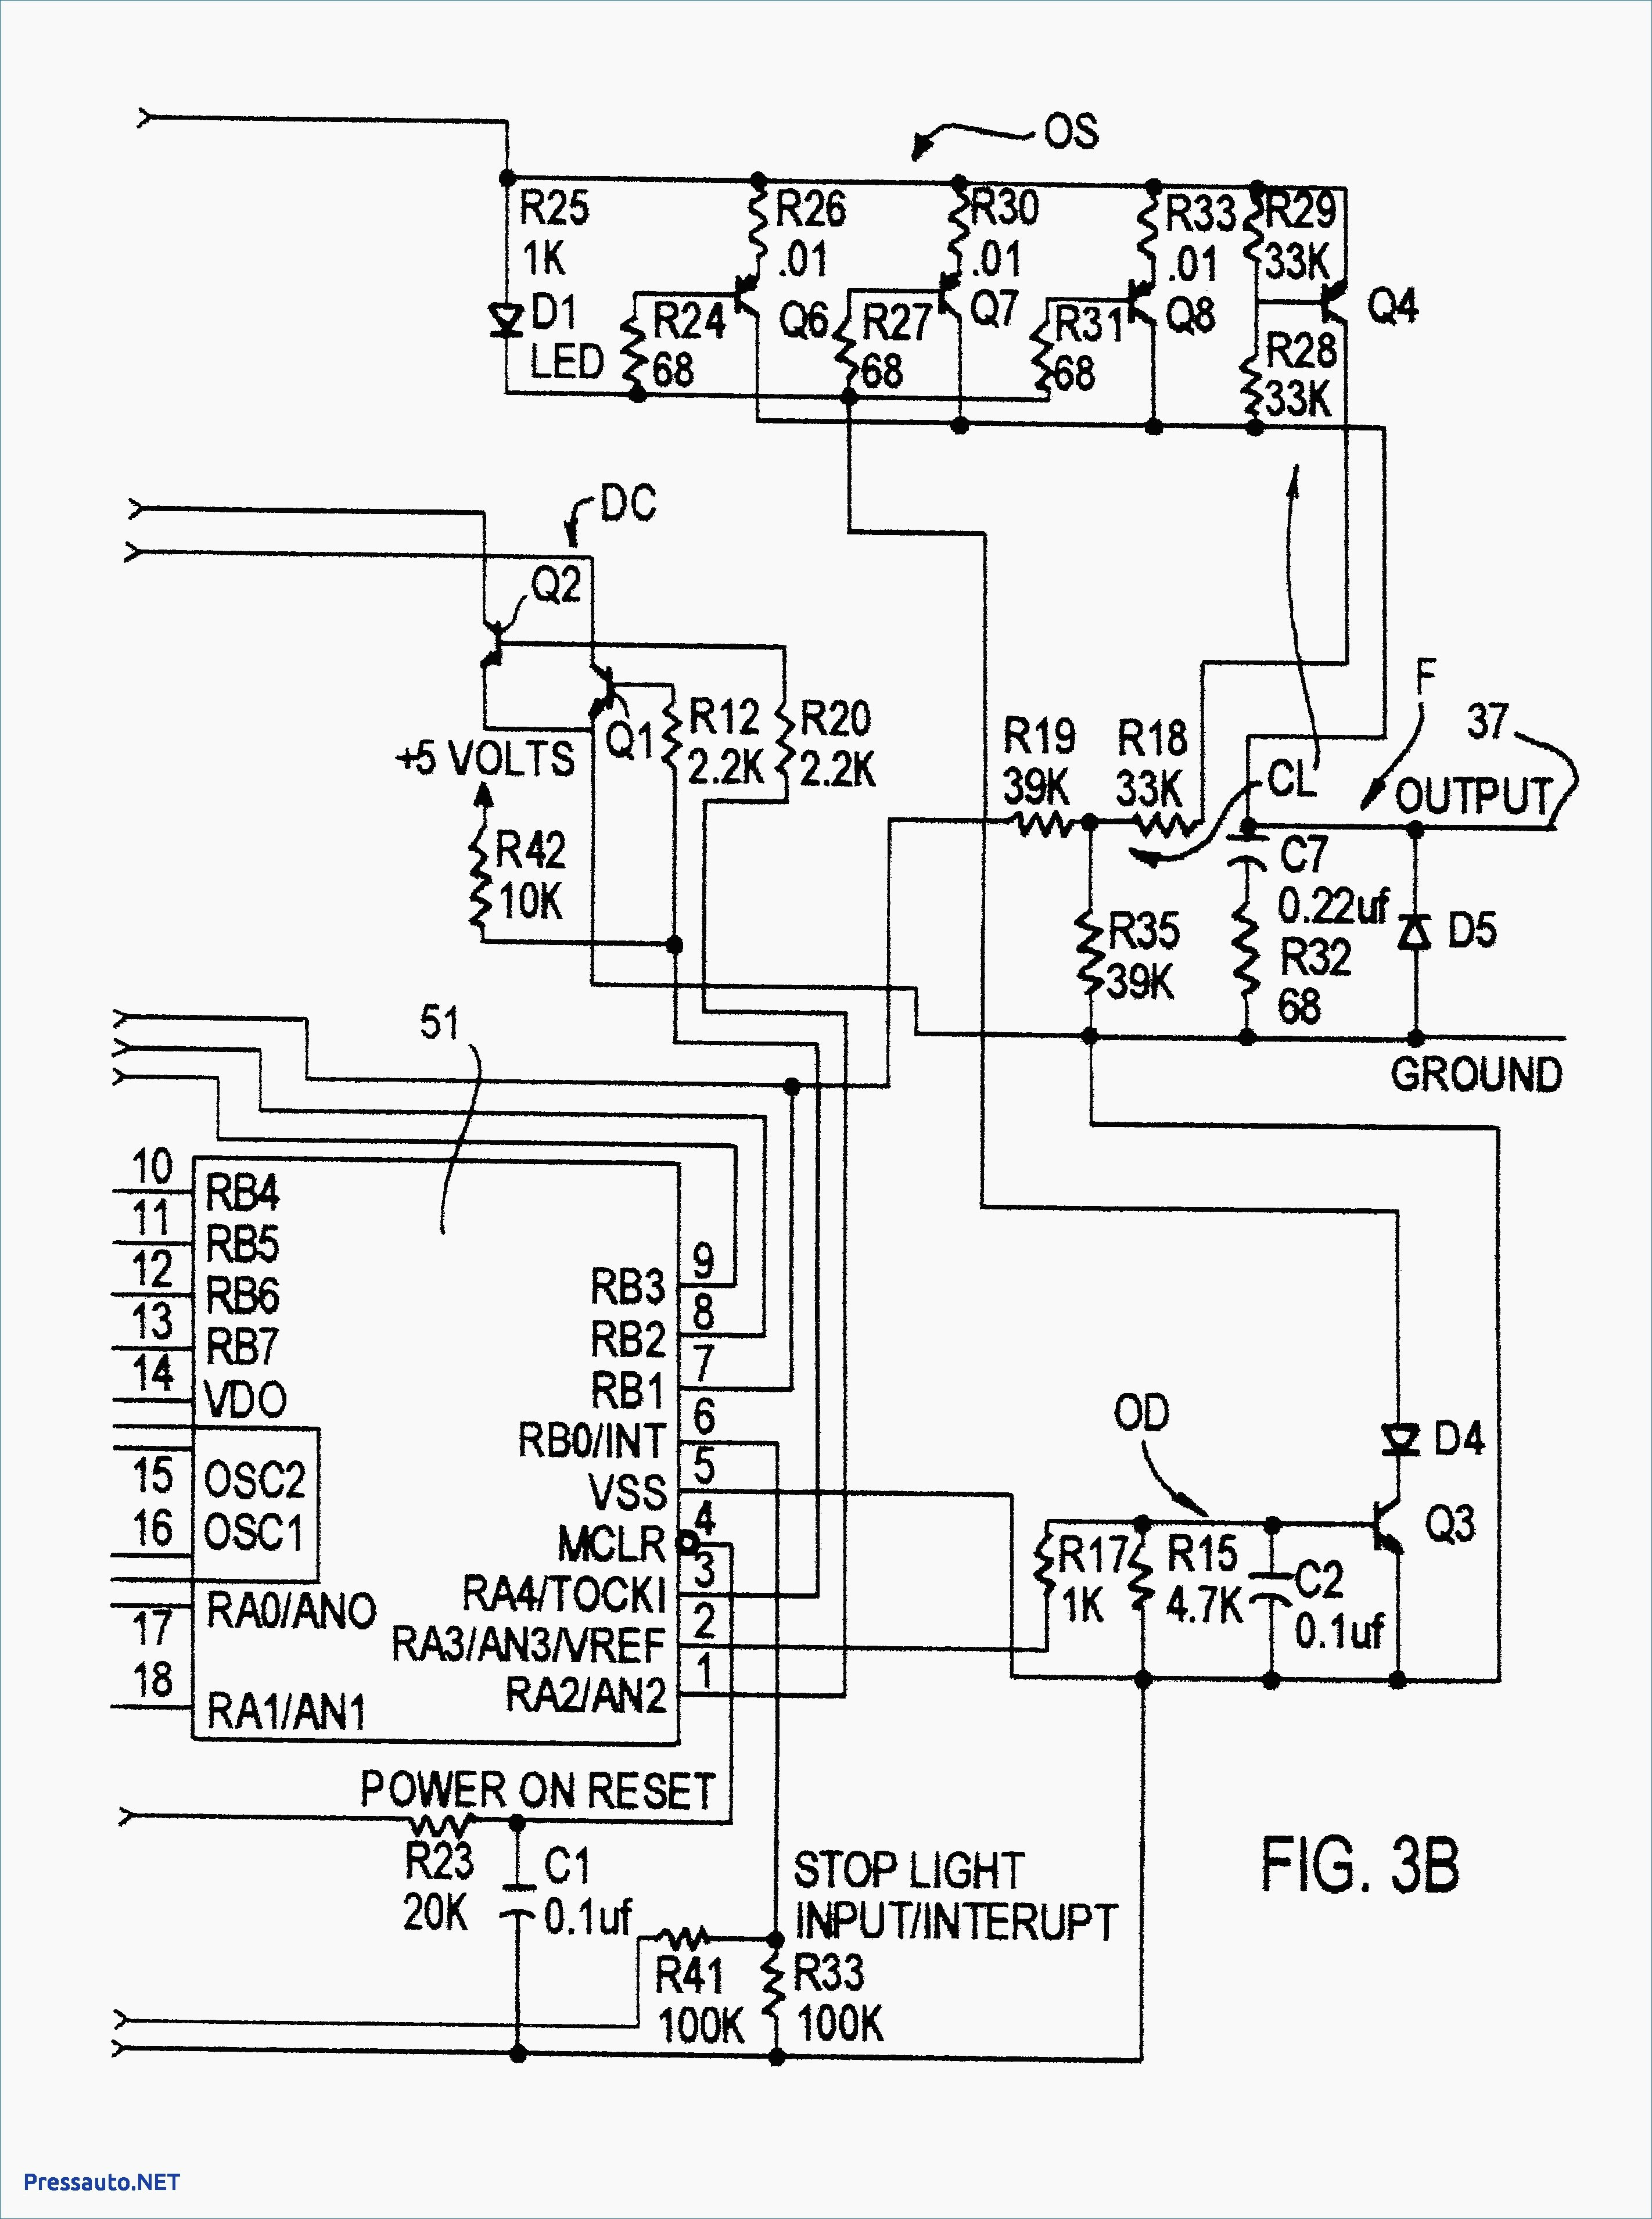 Boat Trailer Wiring Diagram New Harbor Freight Boat Trailer Harbor - Wiring Diagram Boat Trailer